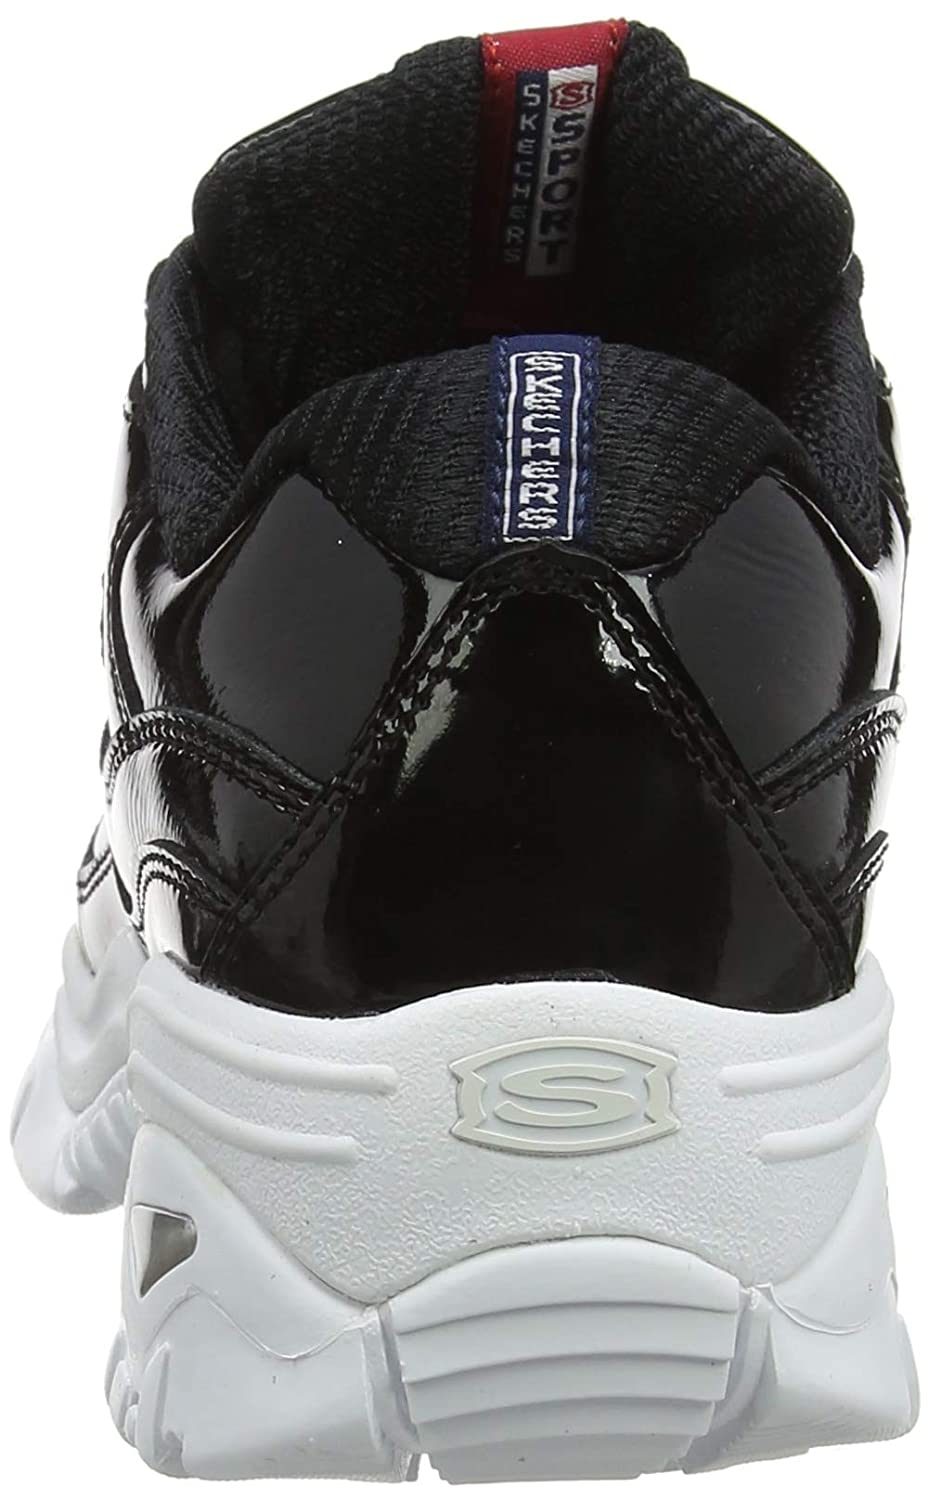 Skechers Damen Energy - Thriller Knight Sneaker (Black Patent Leather/Metallic/White Trim Bkw)